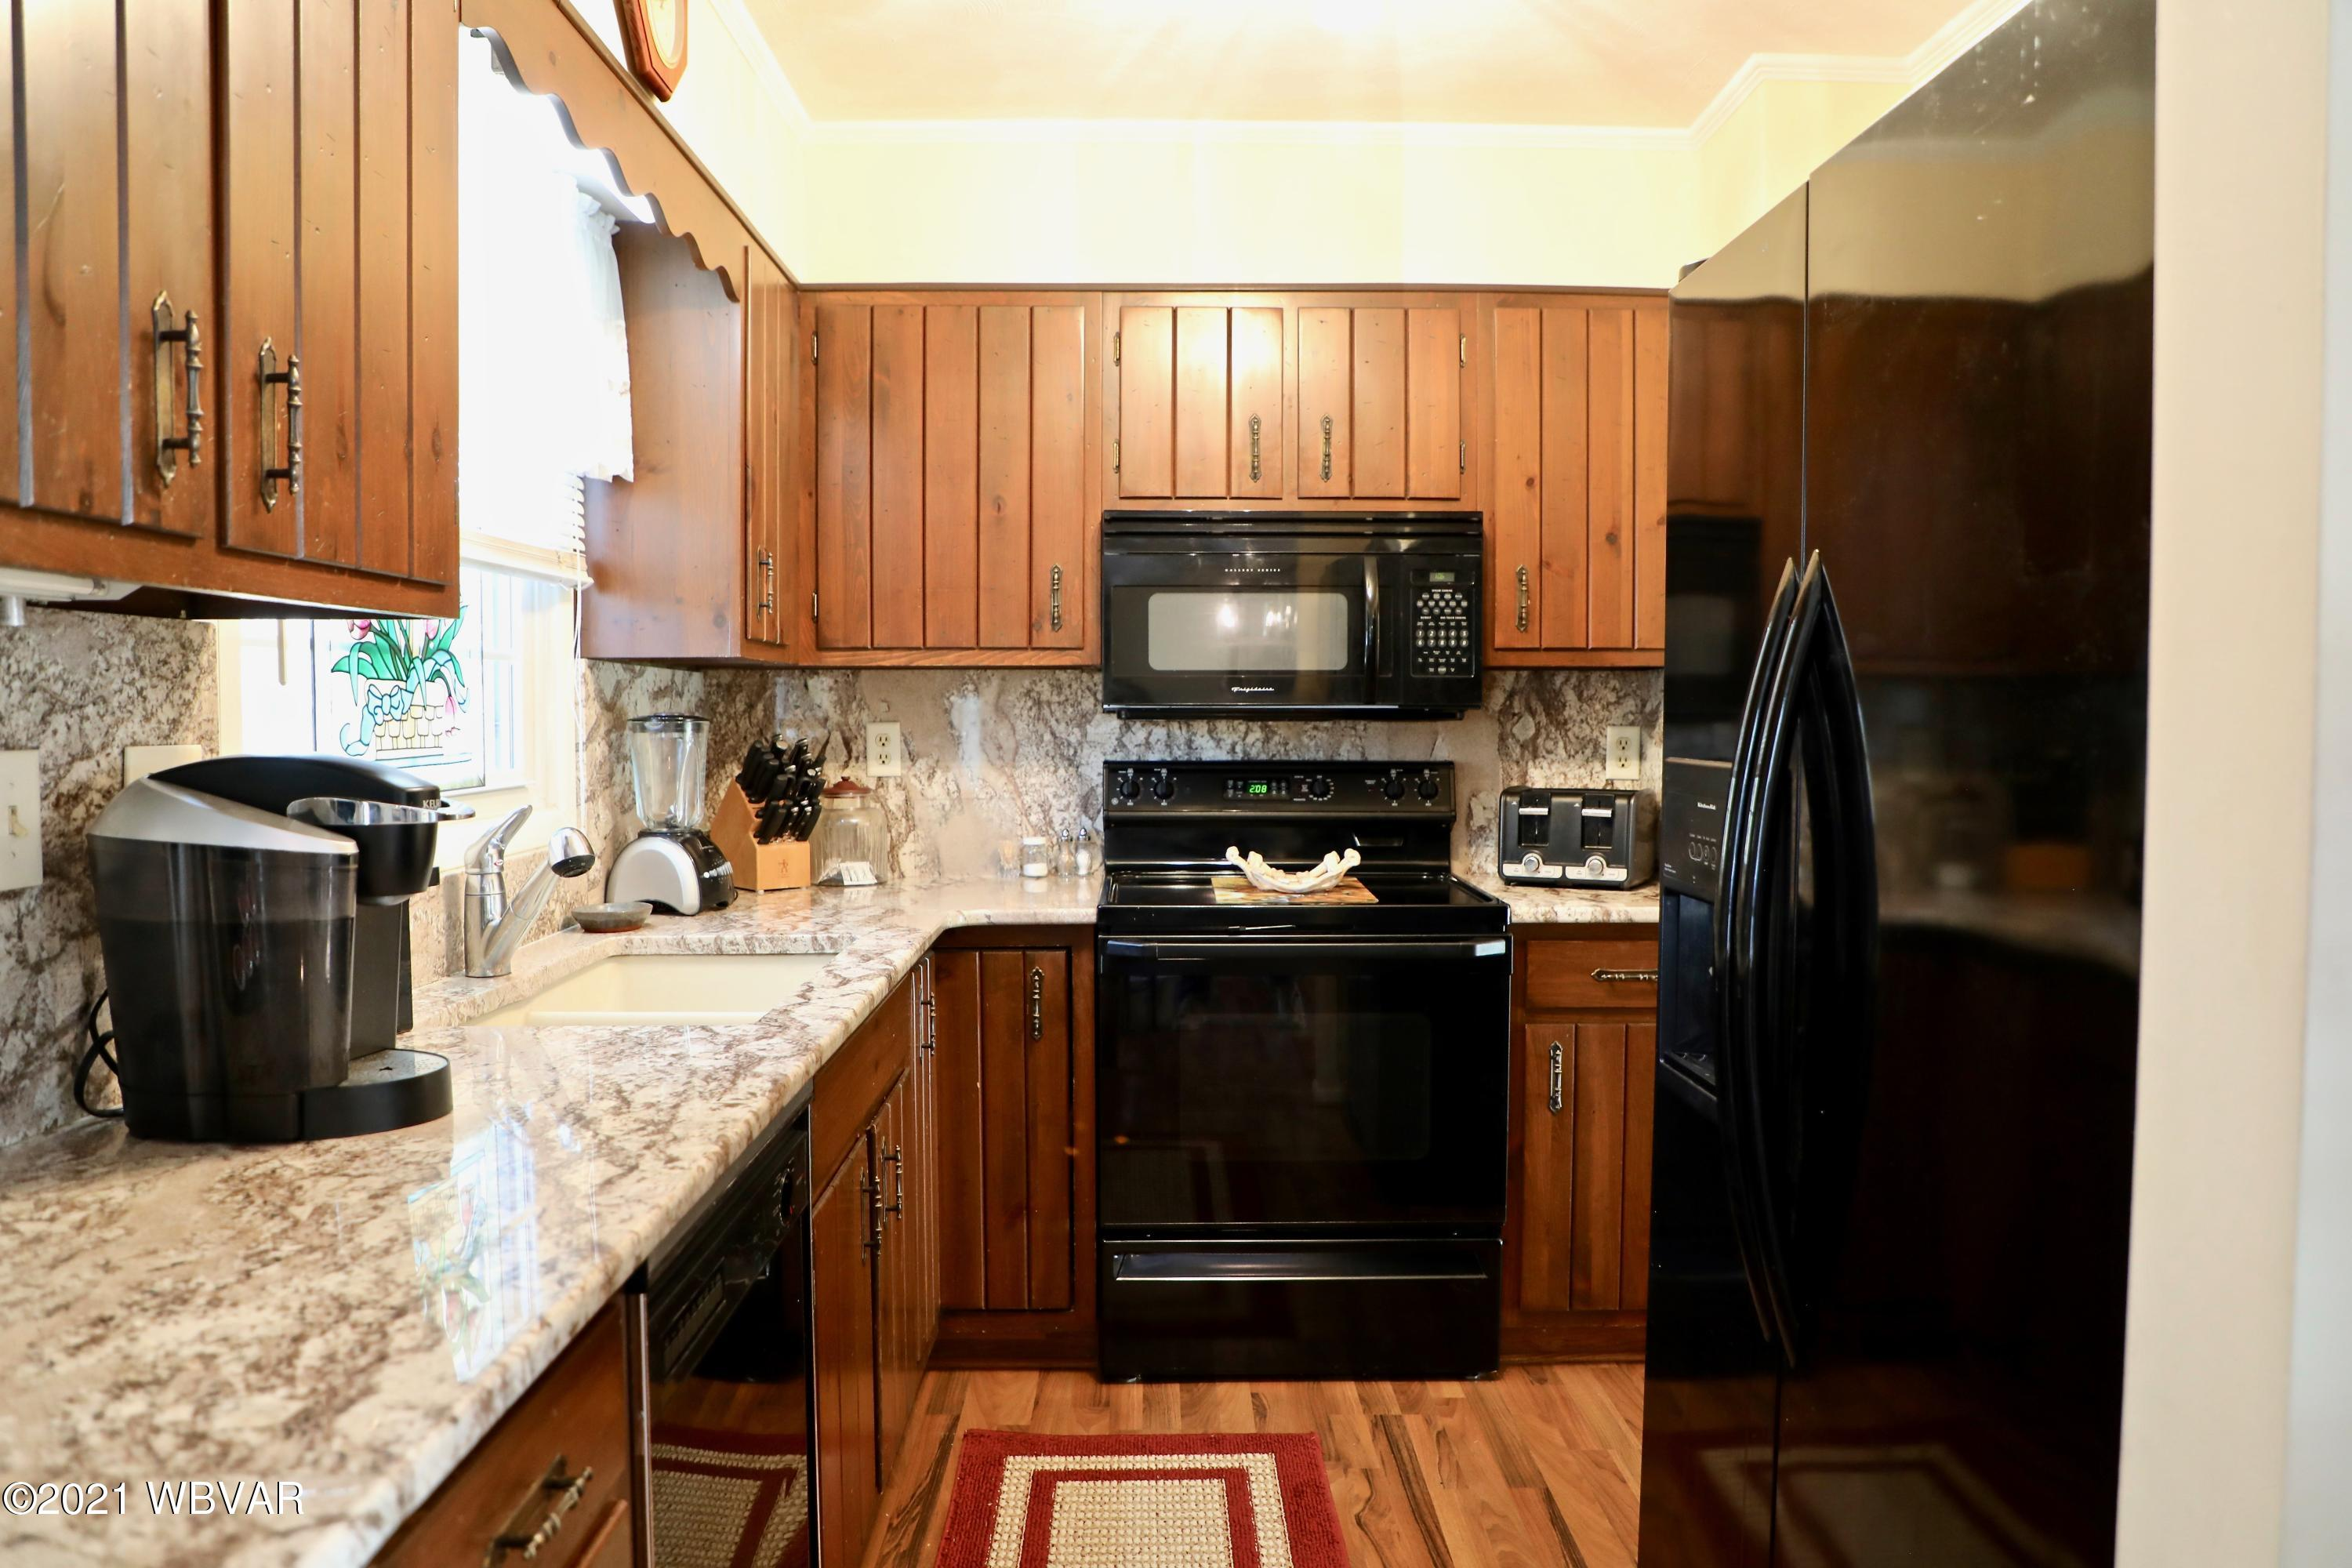 2142 MILL LANE, Williamsport, PA 17701, 3 Bedrooms Bedrooms, ,3 BathroomsBathrooms,Residential,For sale,MILL,WB-91730